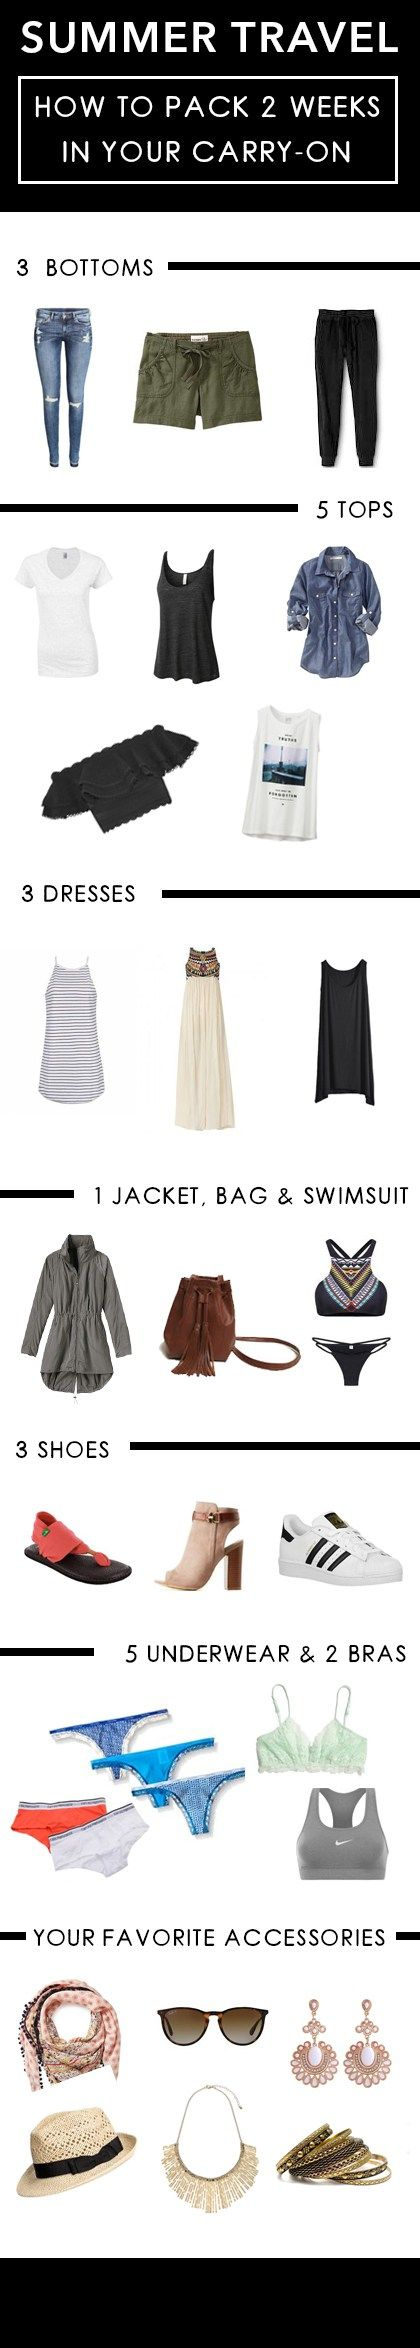 Summer Travel: How To Pack 2 Weeks In Your Carry-On - Society19